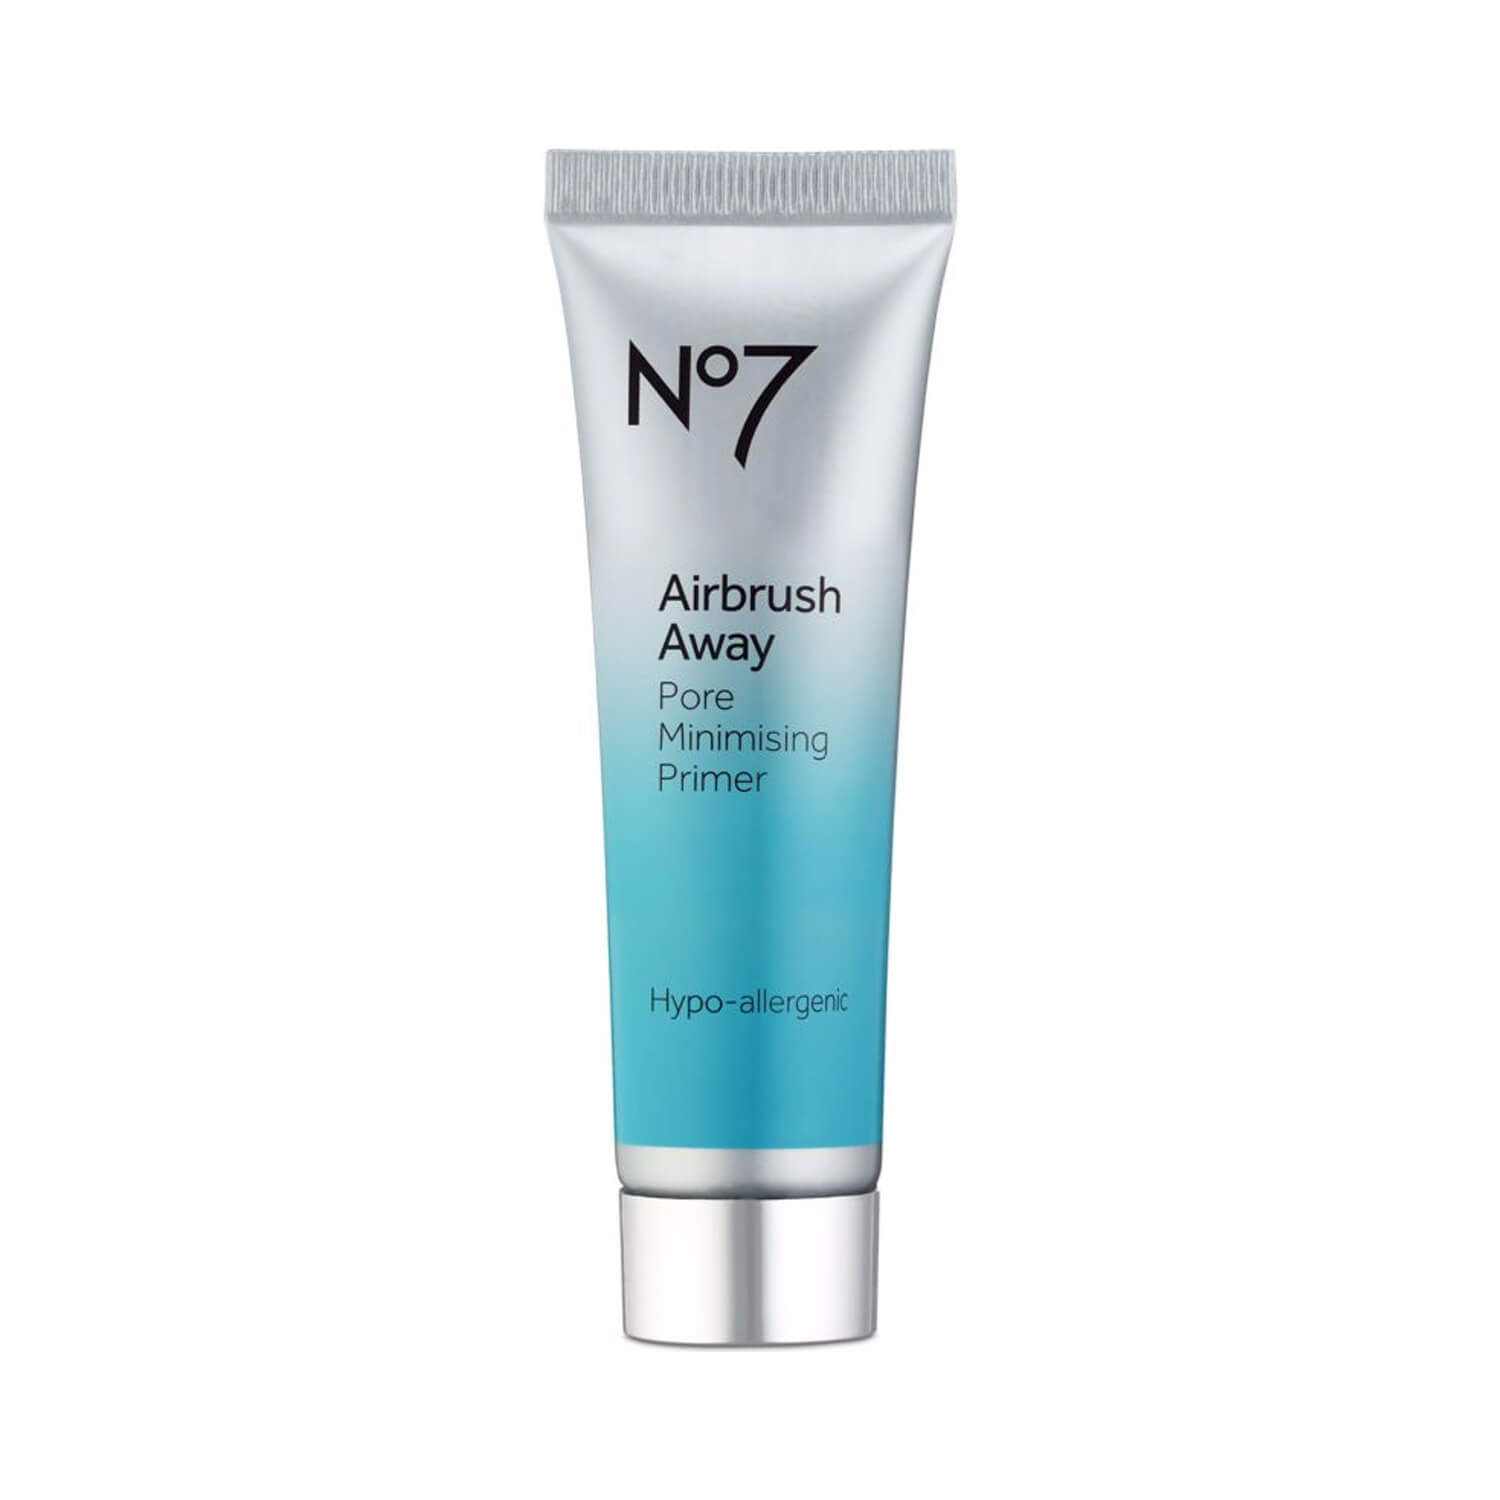 Boots No7 Airbrush Away Pore Minimising Primer 30ml